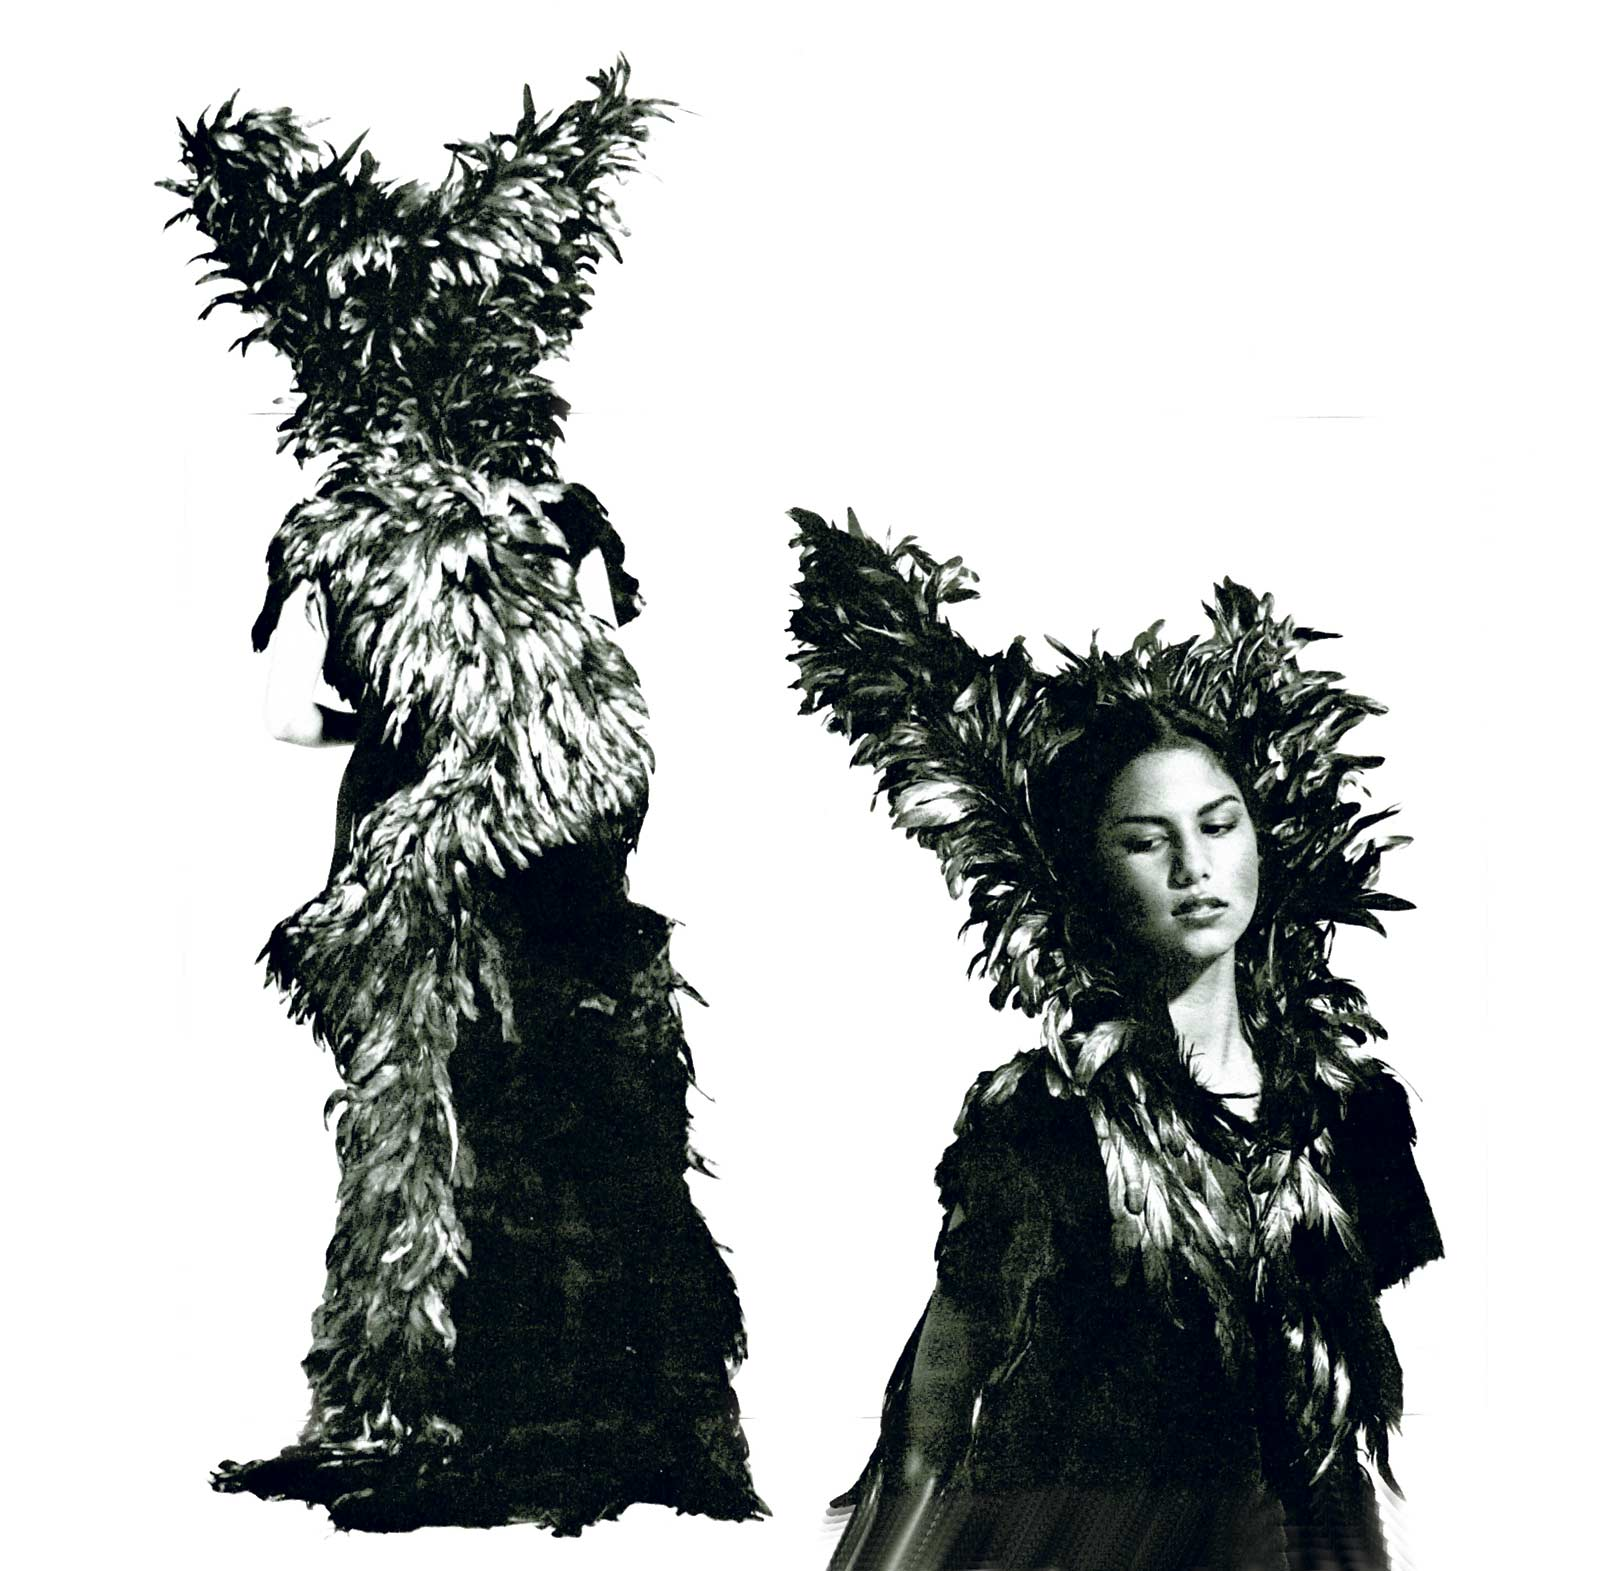 BRUJA DE PLATA, a collaboration by Nicki Marx and Ben Compton of vicuna, rooster feathers, metallic fabric, sheared sheep skin, woven fiber strap with metal hardware, leather, 1976. Photograph by Robert Mertens.